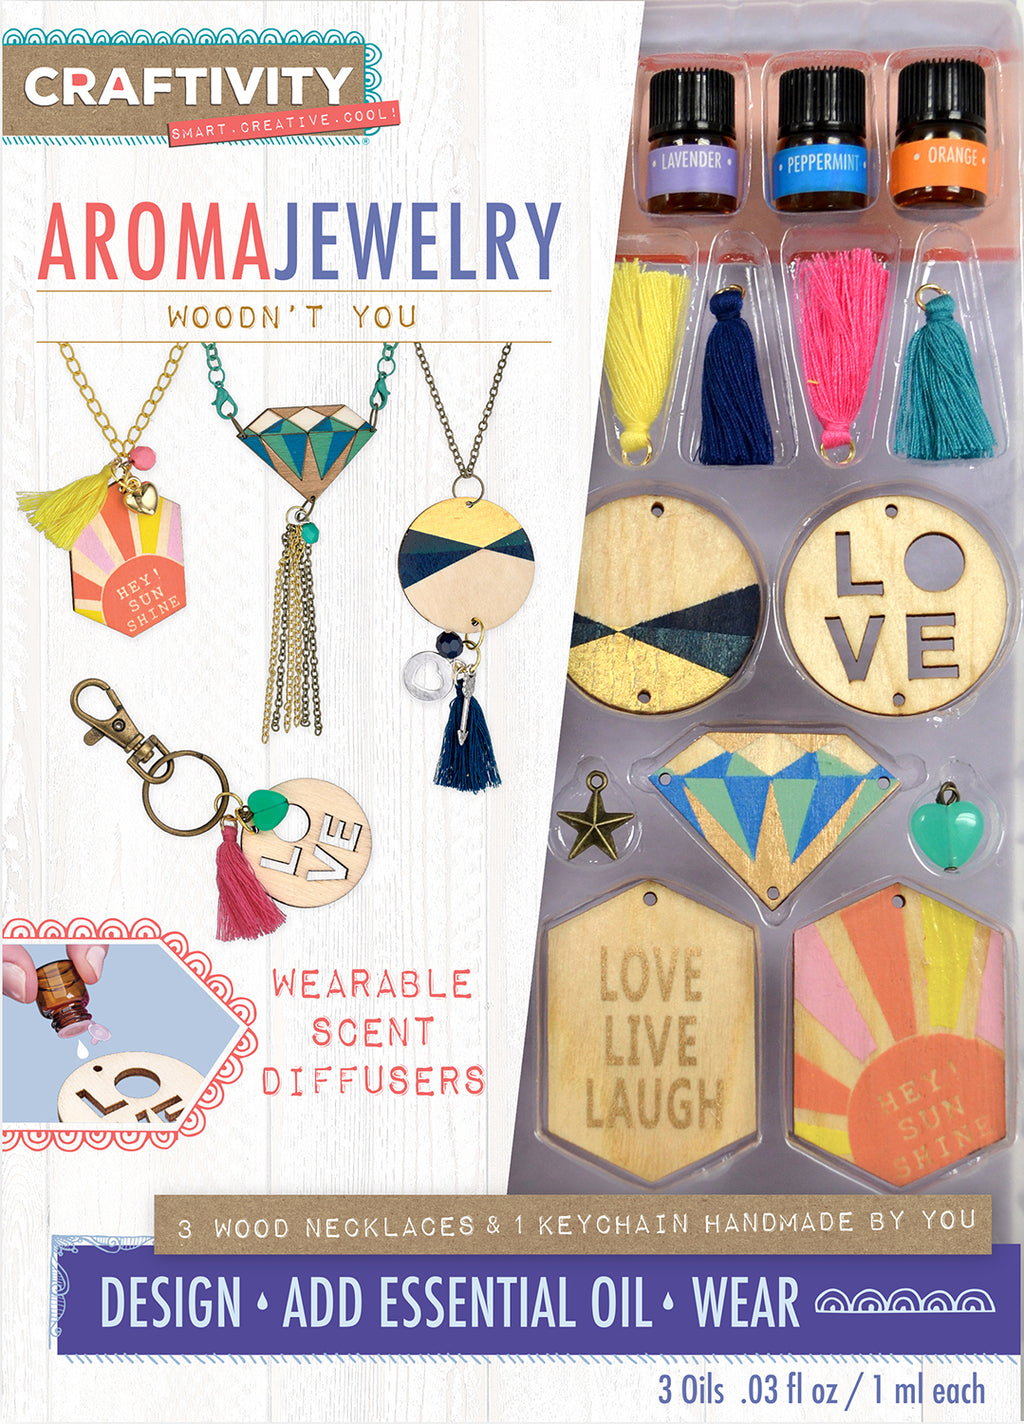 Craftivity - Aroma Jewelry: Woodn't You